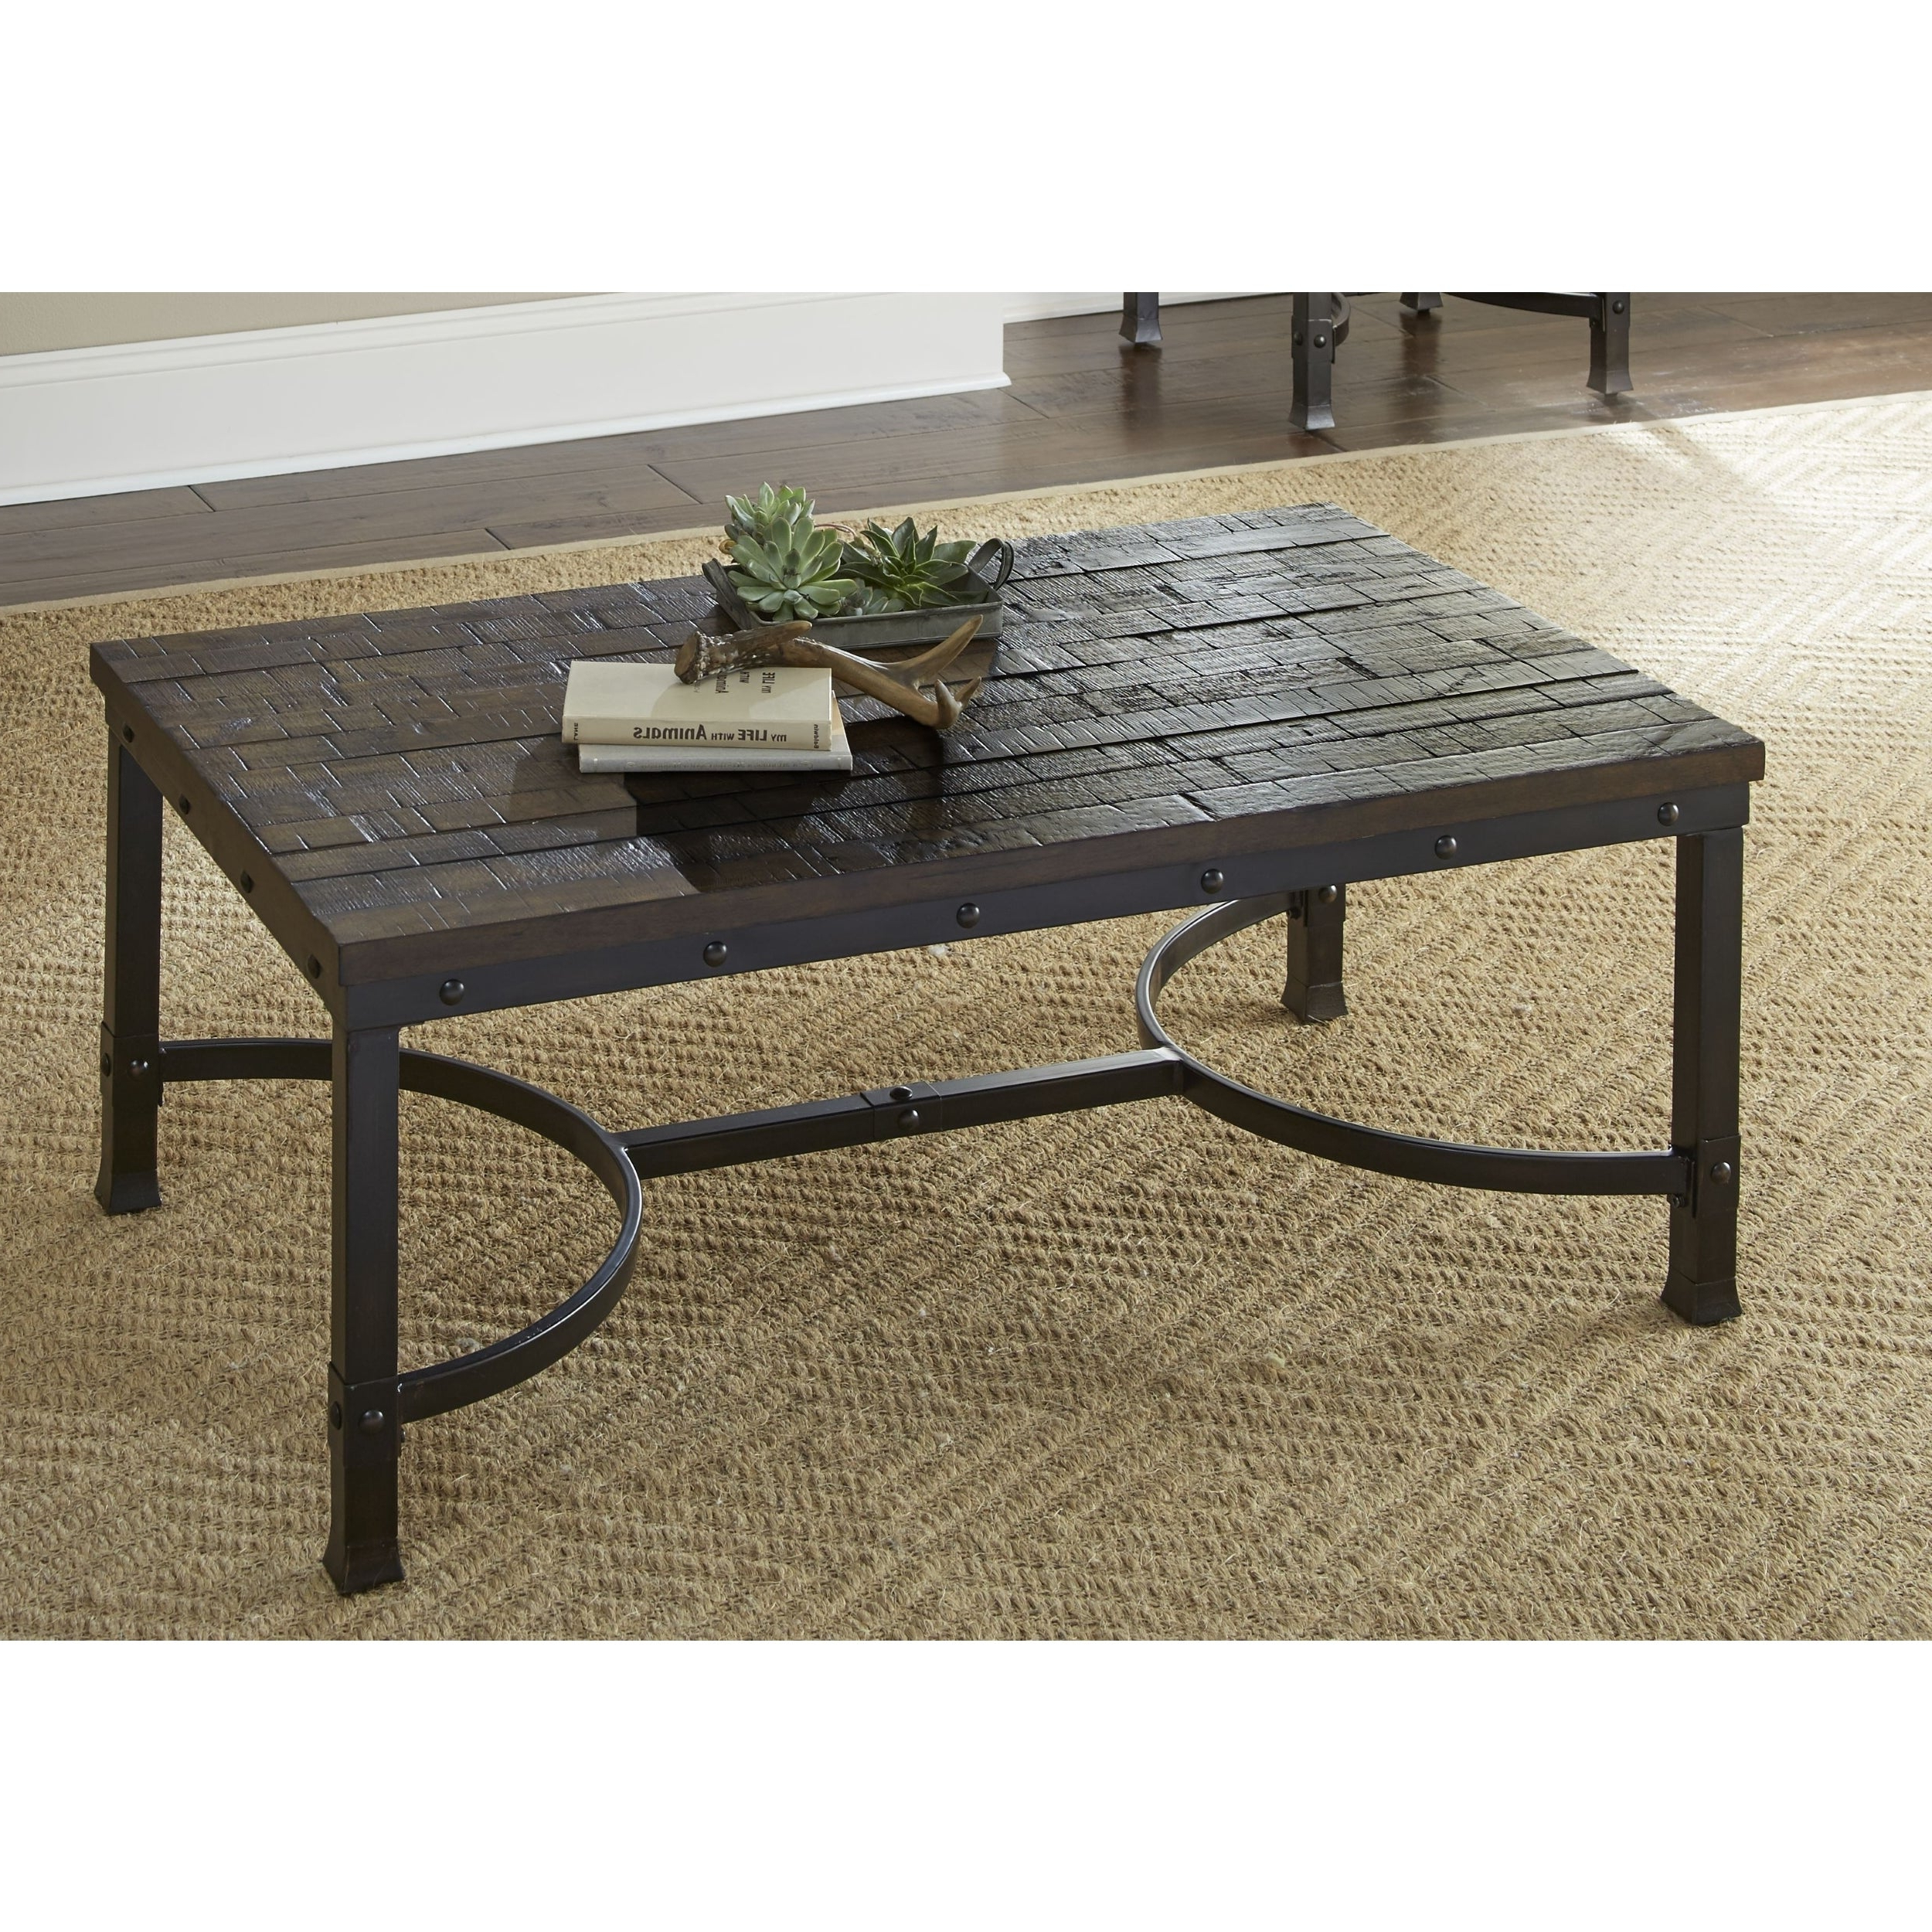 2020 Lockwood Rectangle Coffee Tables In Austin Industrial Style 48 Inch Rectangle Coffee Tablegreyson Living (View 1 of 20)